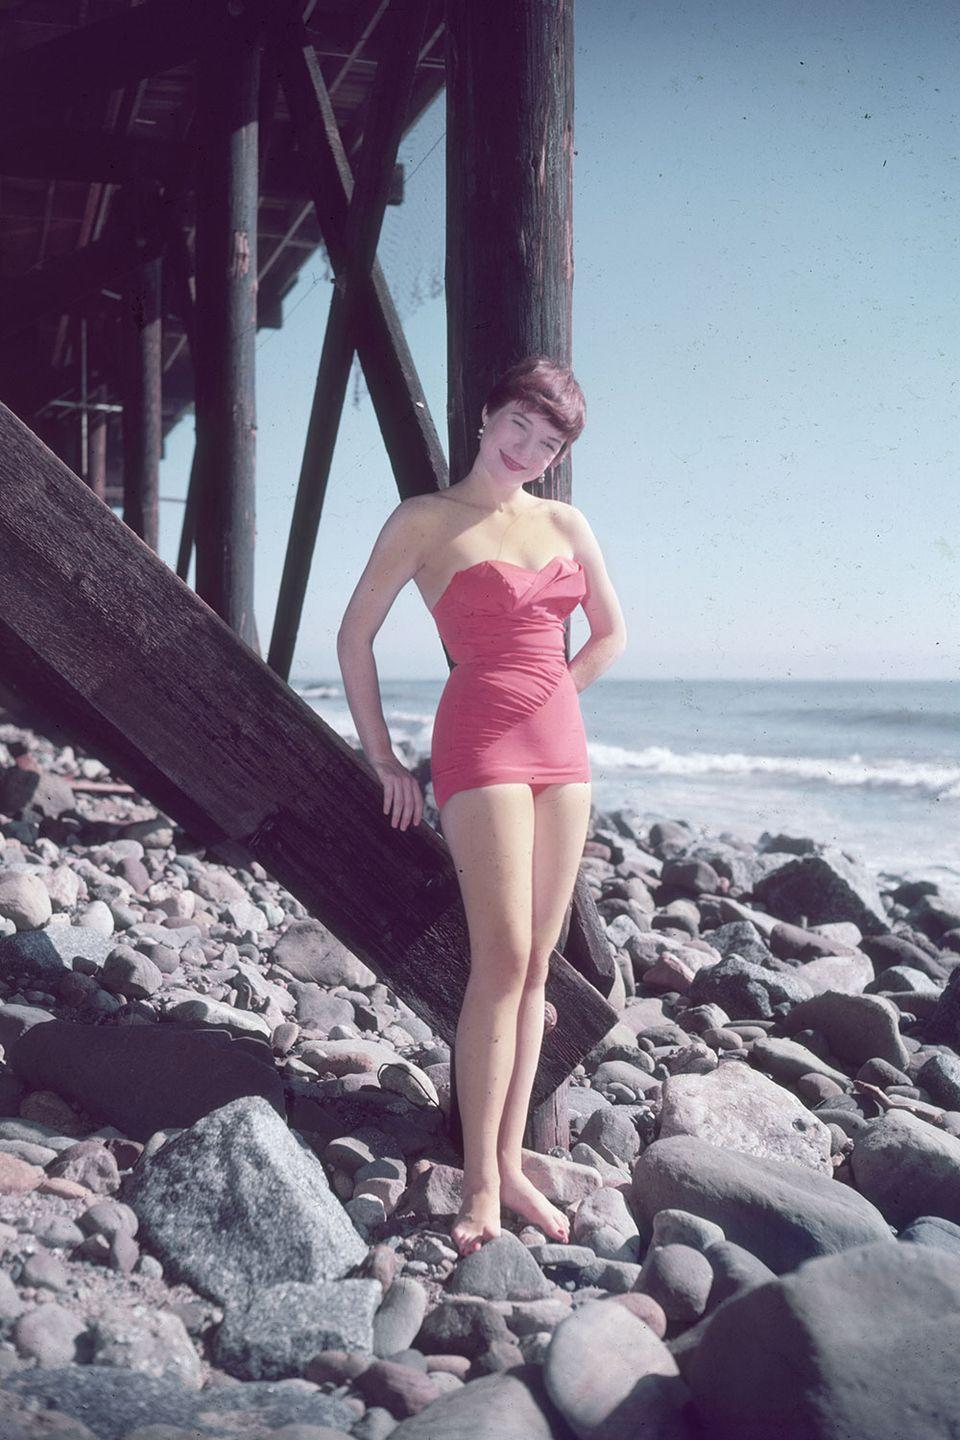 <p>Shirley MacLaine models her swimsuit while standing on the rocks under a pier, circa 1955.</p>